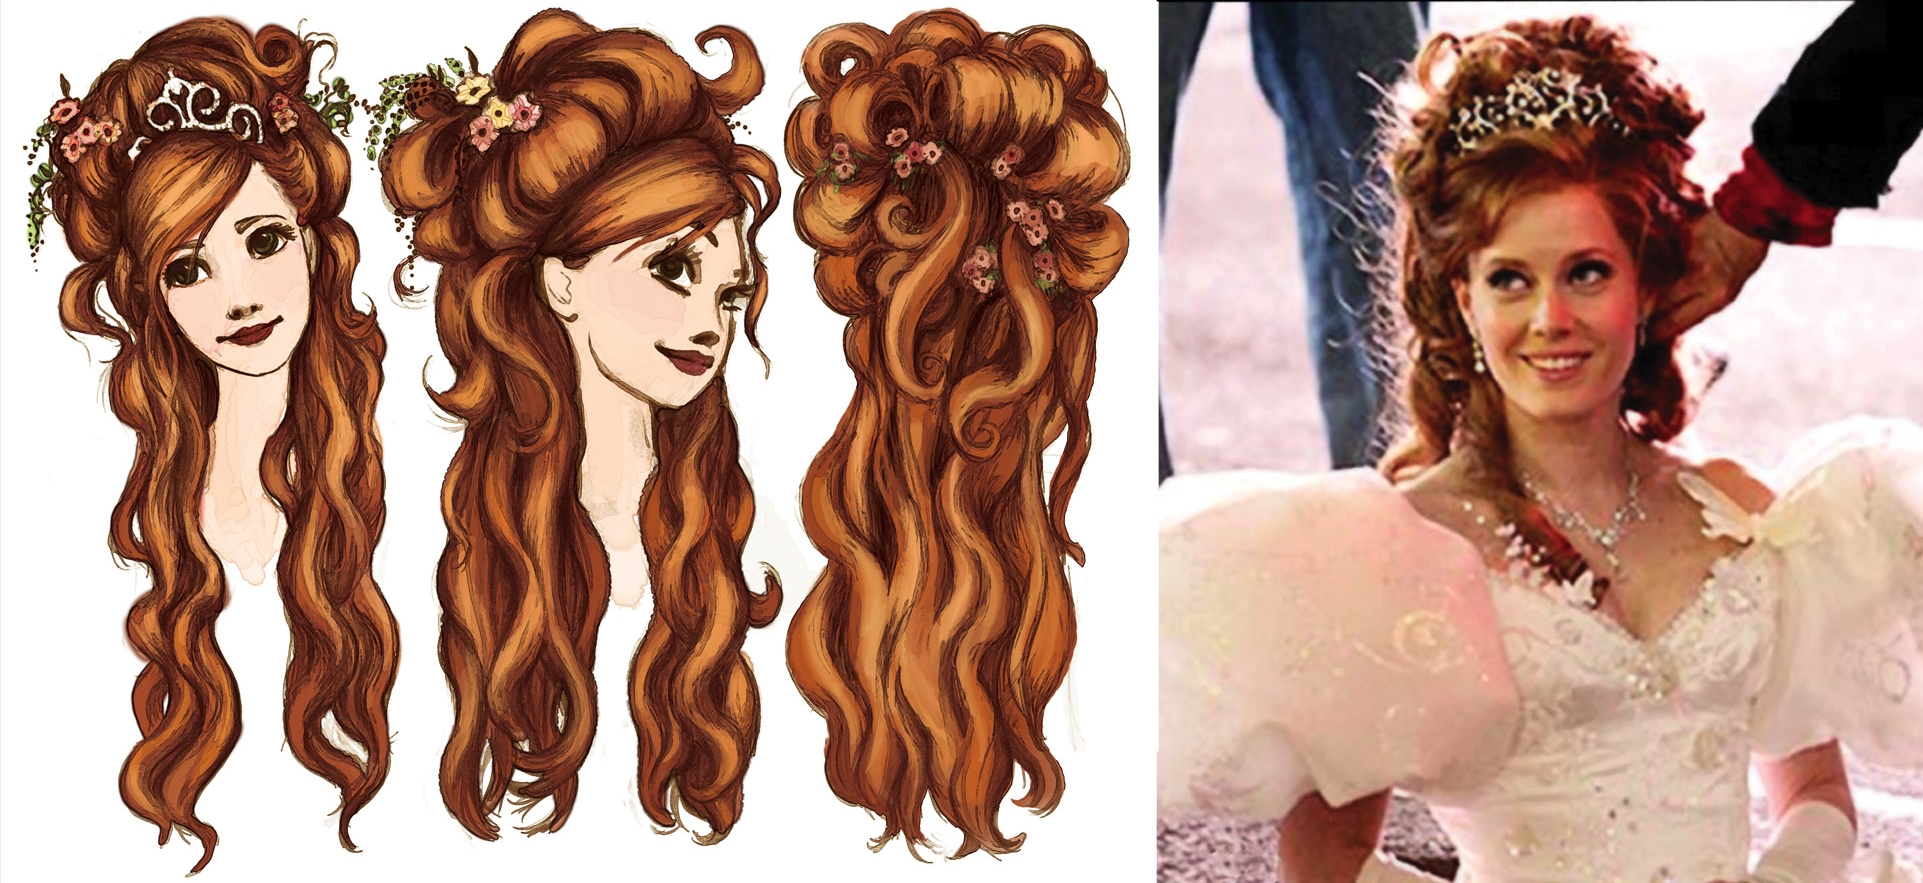 GISELLE HAIR DESIGNS / AMY ADAMS // VISUAL DEVELOPMENT FOR ENCHANTED